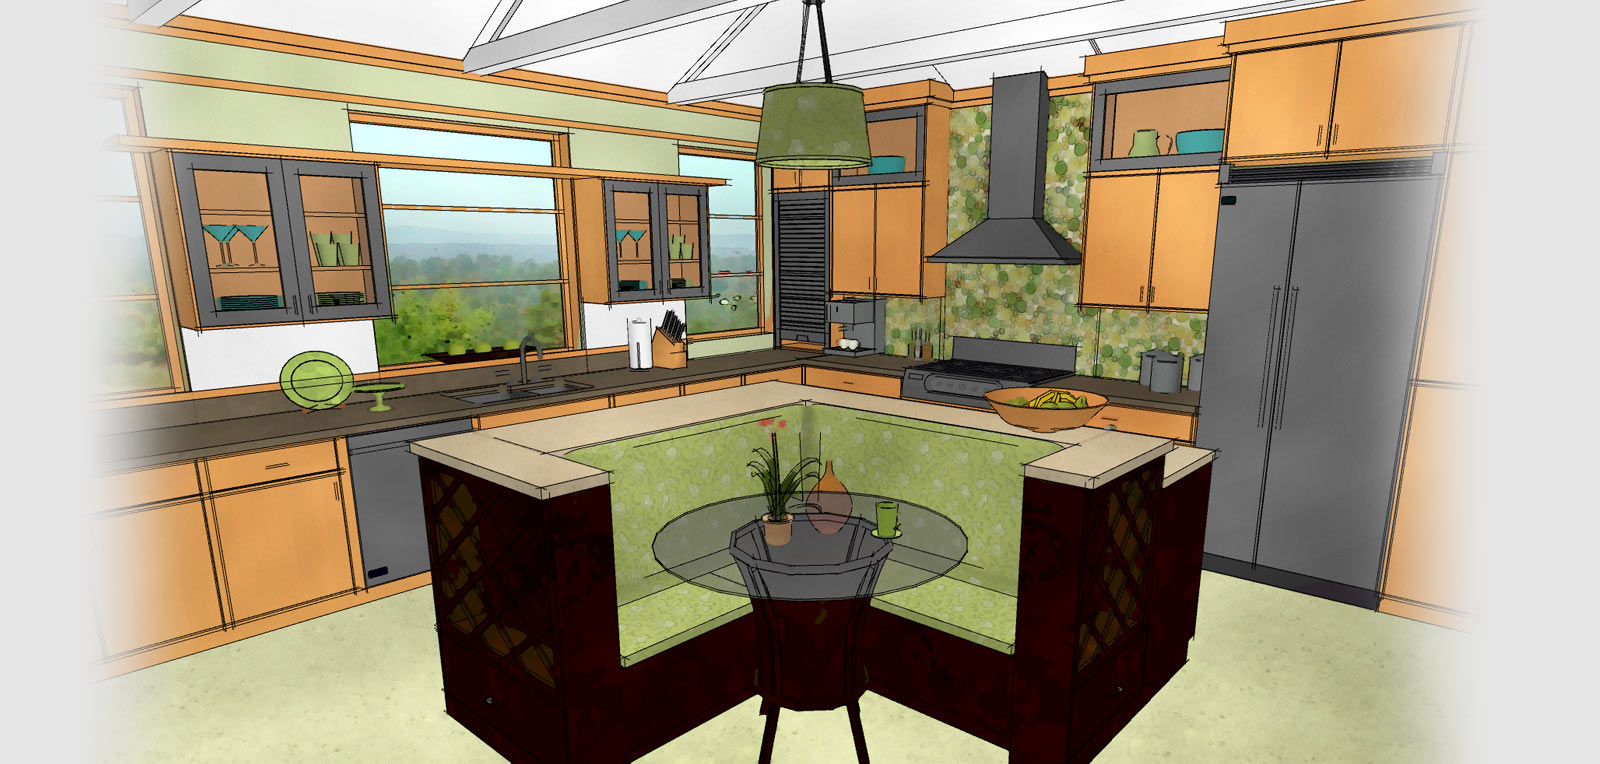 kitchen bath kitchen design software Technical drawing of a kitchen generated by Home Designer